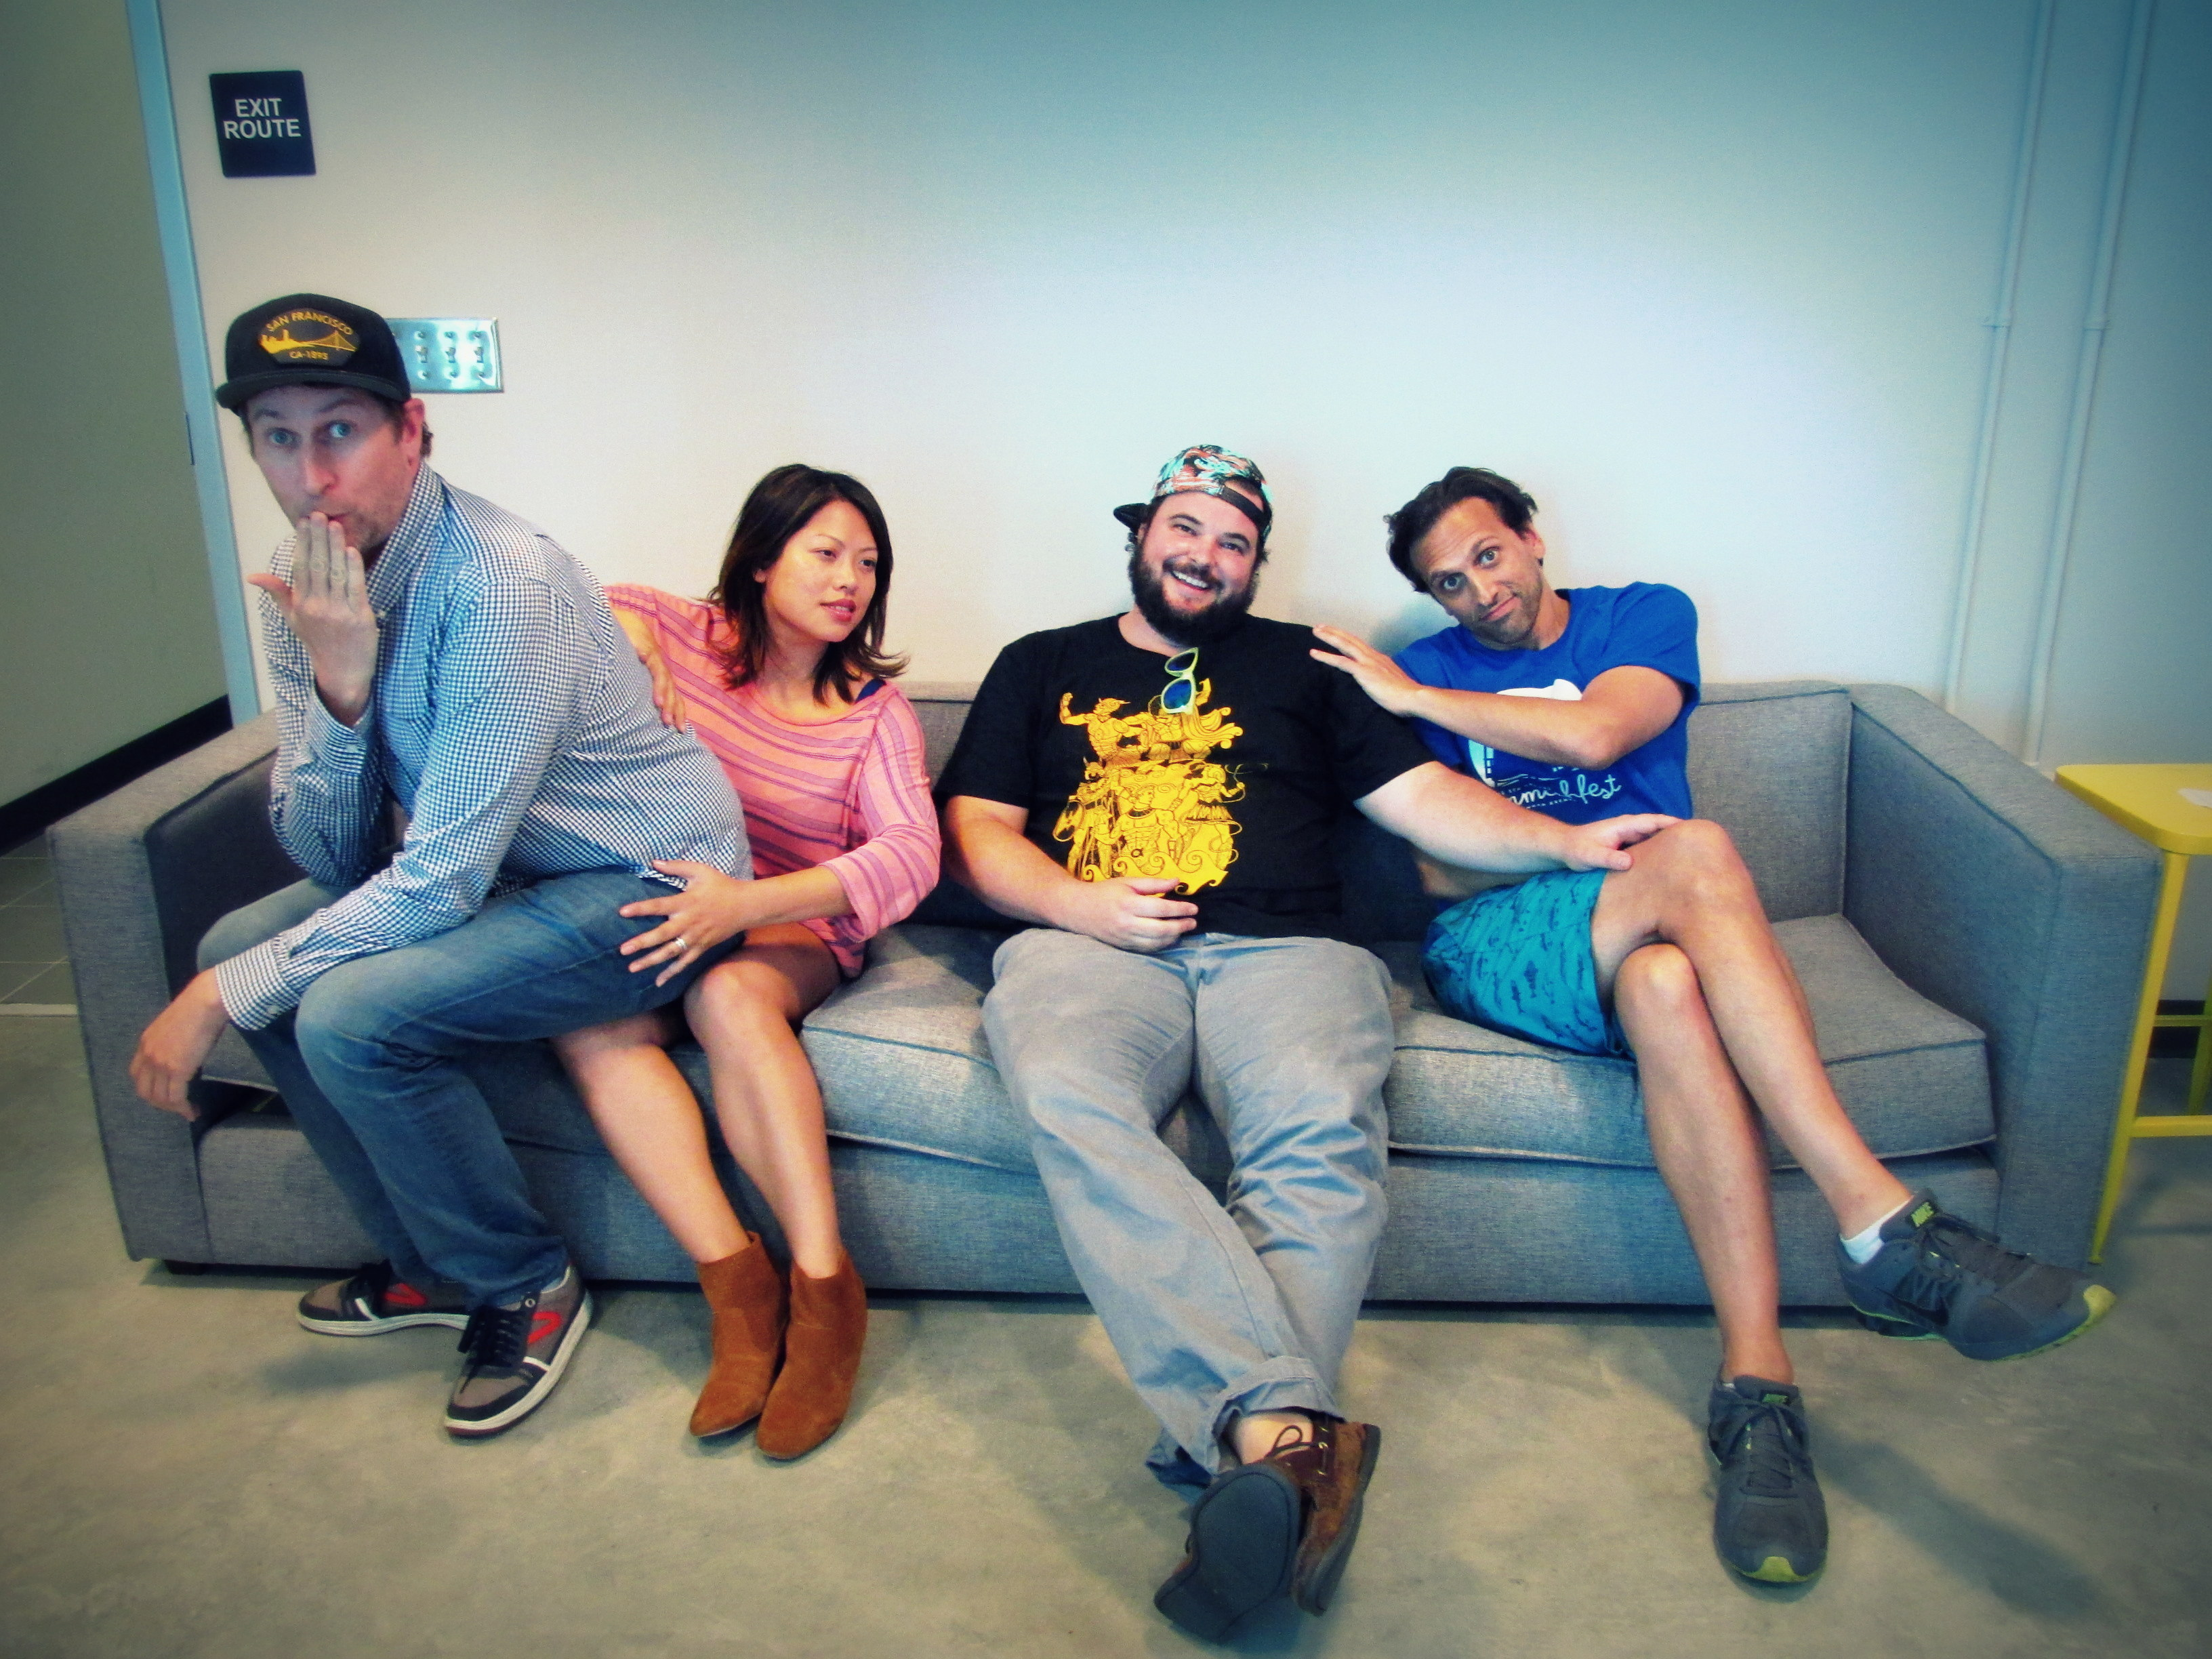 Cattlelickitup Episode 305 Of Comedy Bang Bang The Podcast On Earwolf